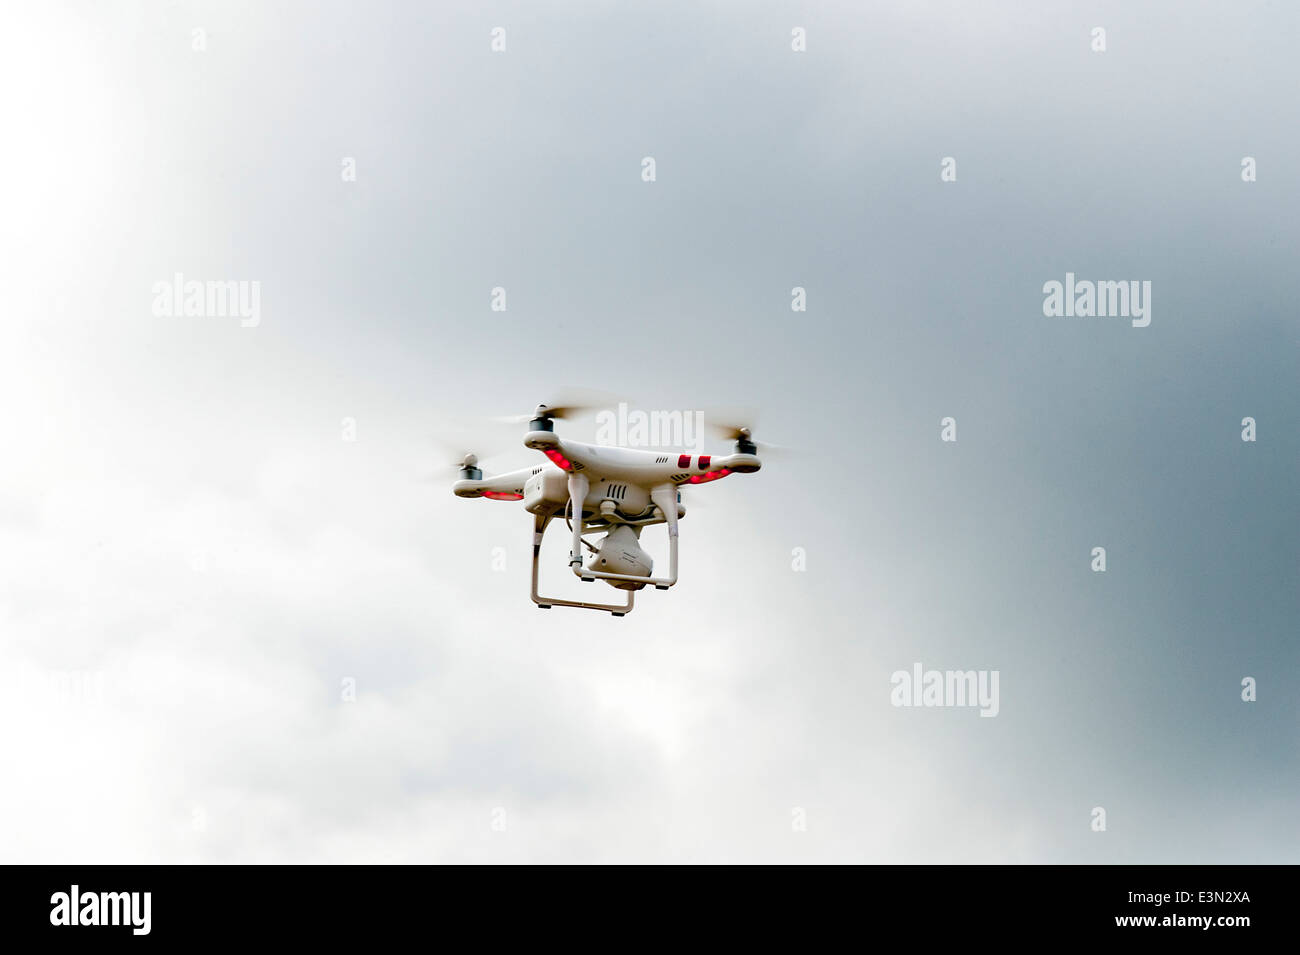 Radio remote controlled camera drone hovering in flight over Lough Foyle, Derry,Londonderry, Northern Ireland - Stock Image